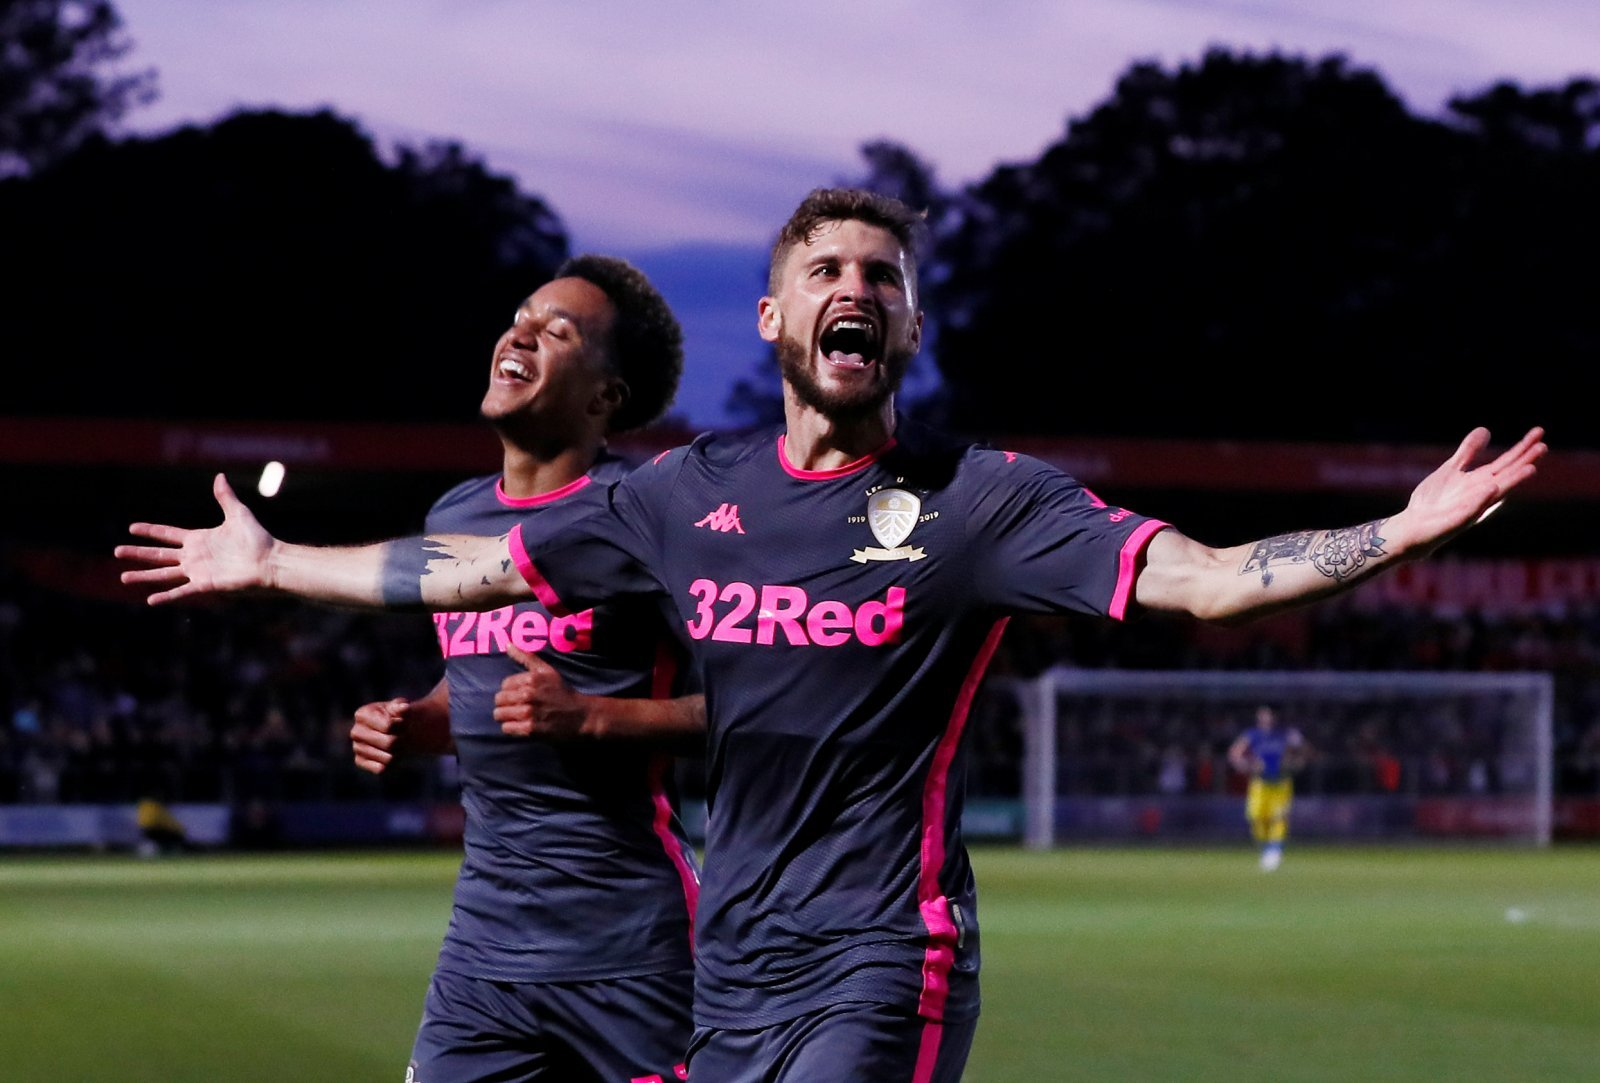 Leeds United: Mateusz Klich expected to start against Charlton Athletic